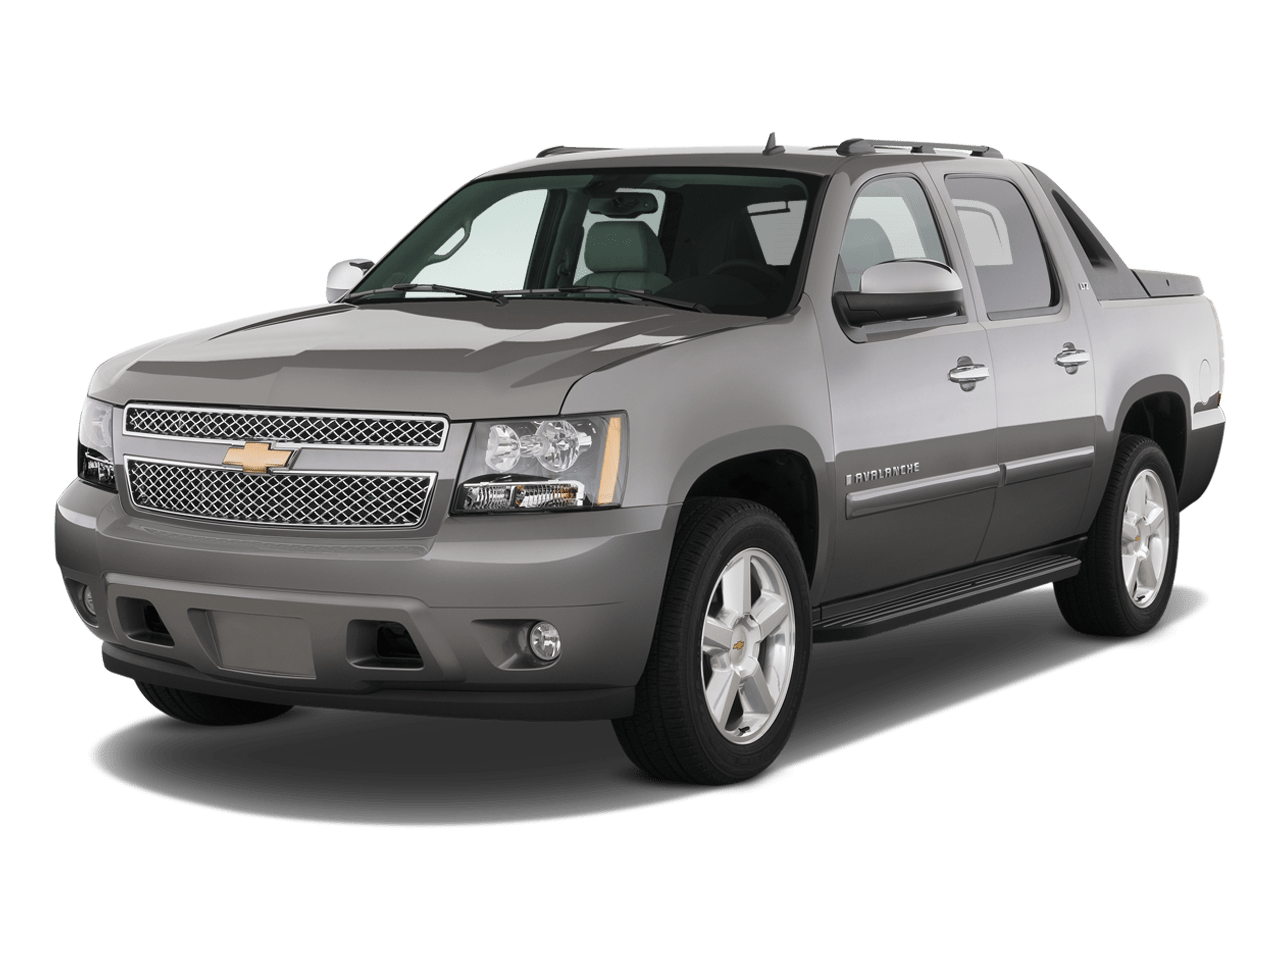 wiring schematic for 2009 chevrolet avalanche wiring diagrams data wig wag flasher diagram wig wag wiring diagram chevy avalanche [ 392:294 x 1280 Pixel ]